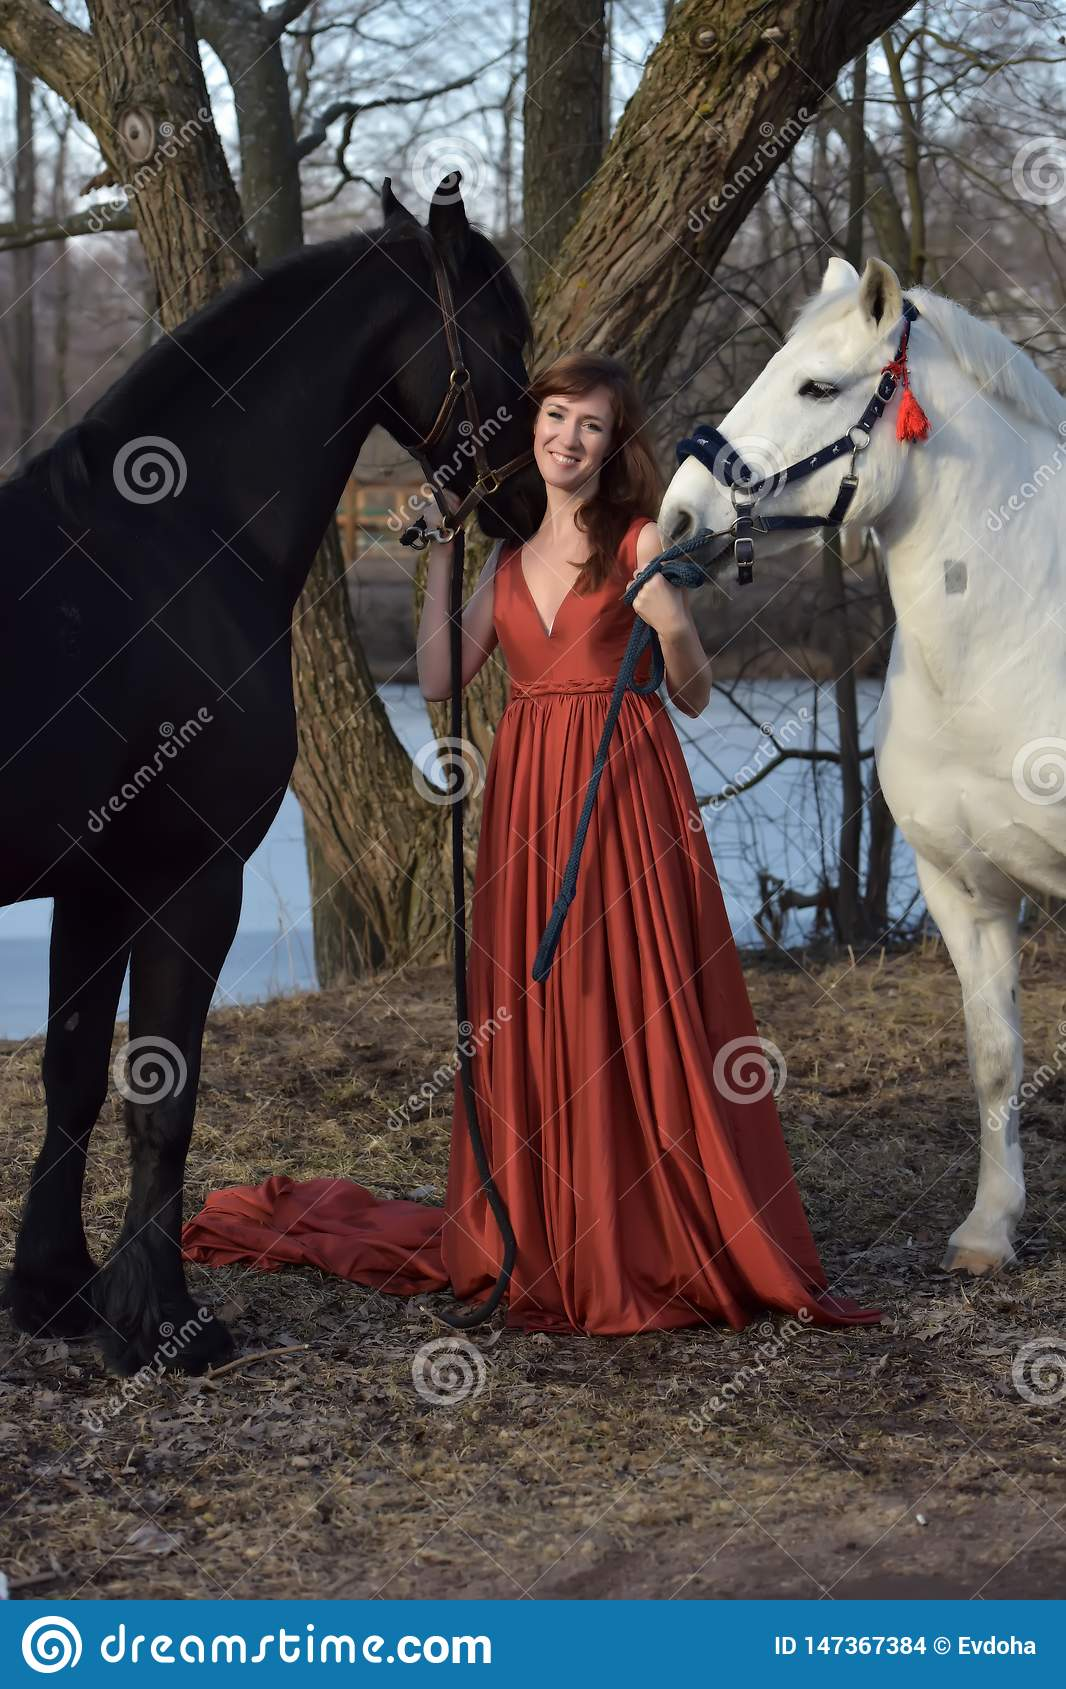 Woman in a red long dress with two horses